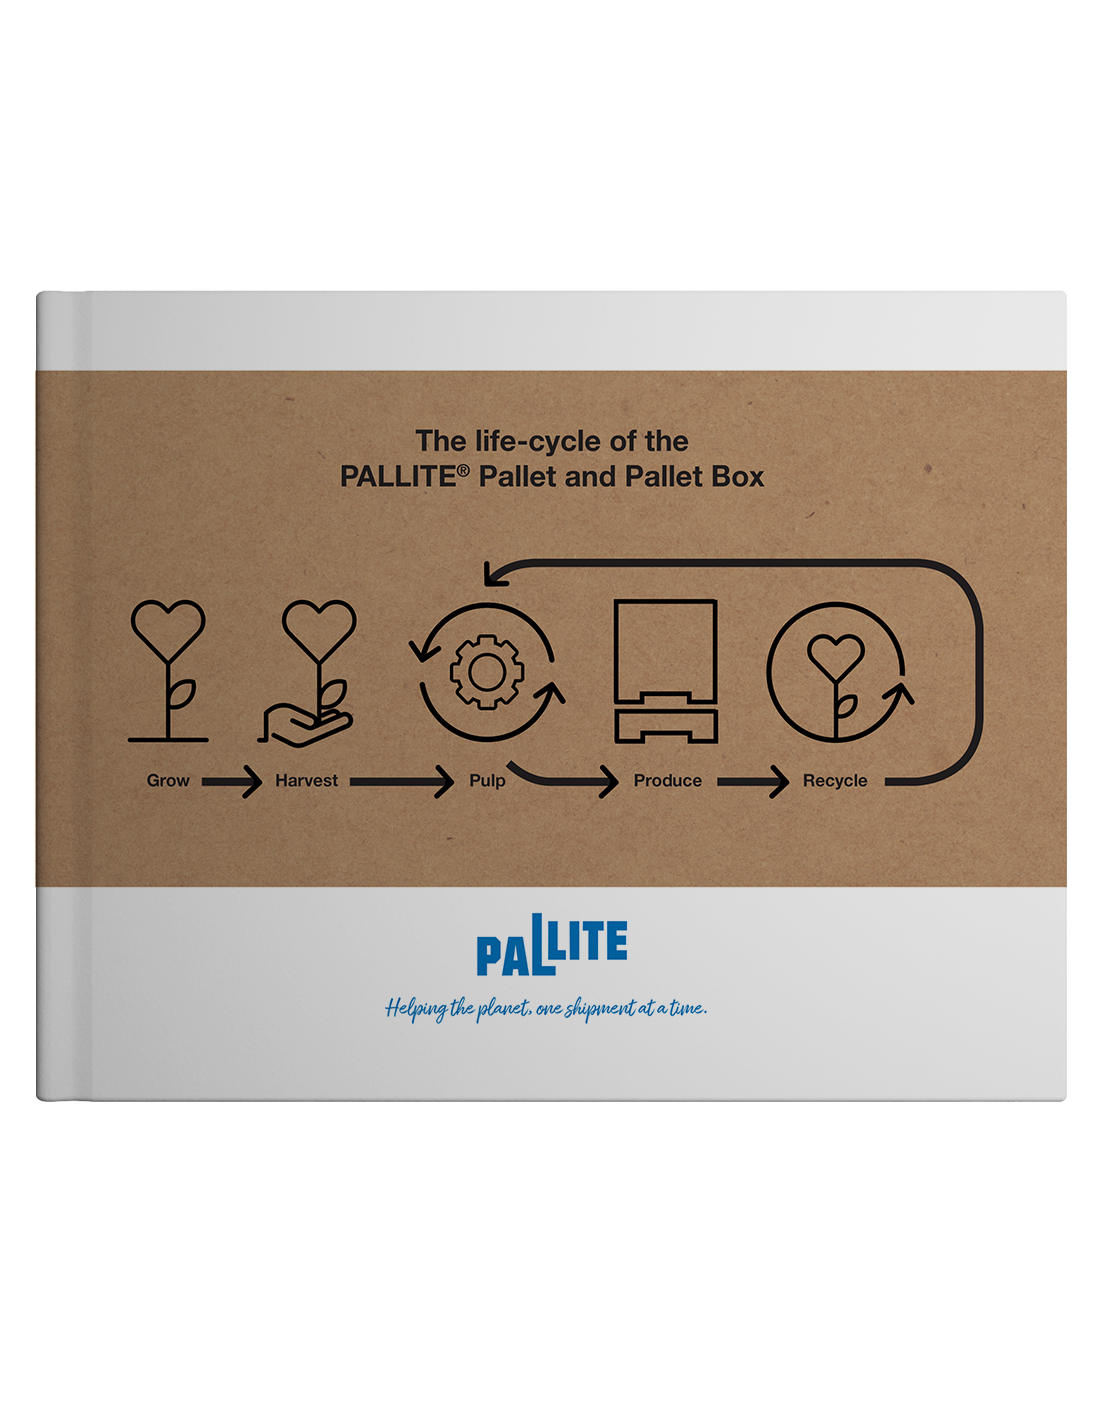 Life-cycle of the PALLITE® Pallet and Pallet Box